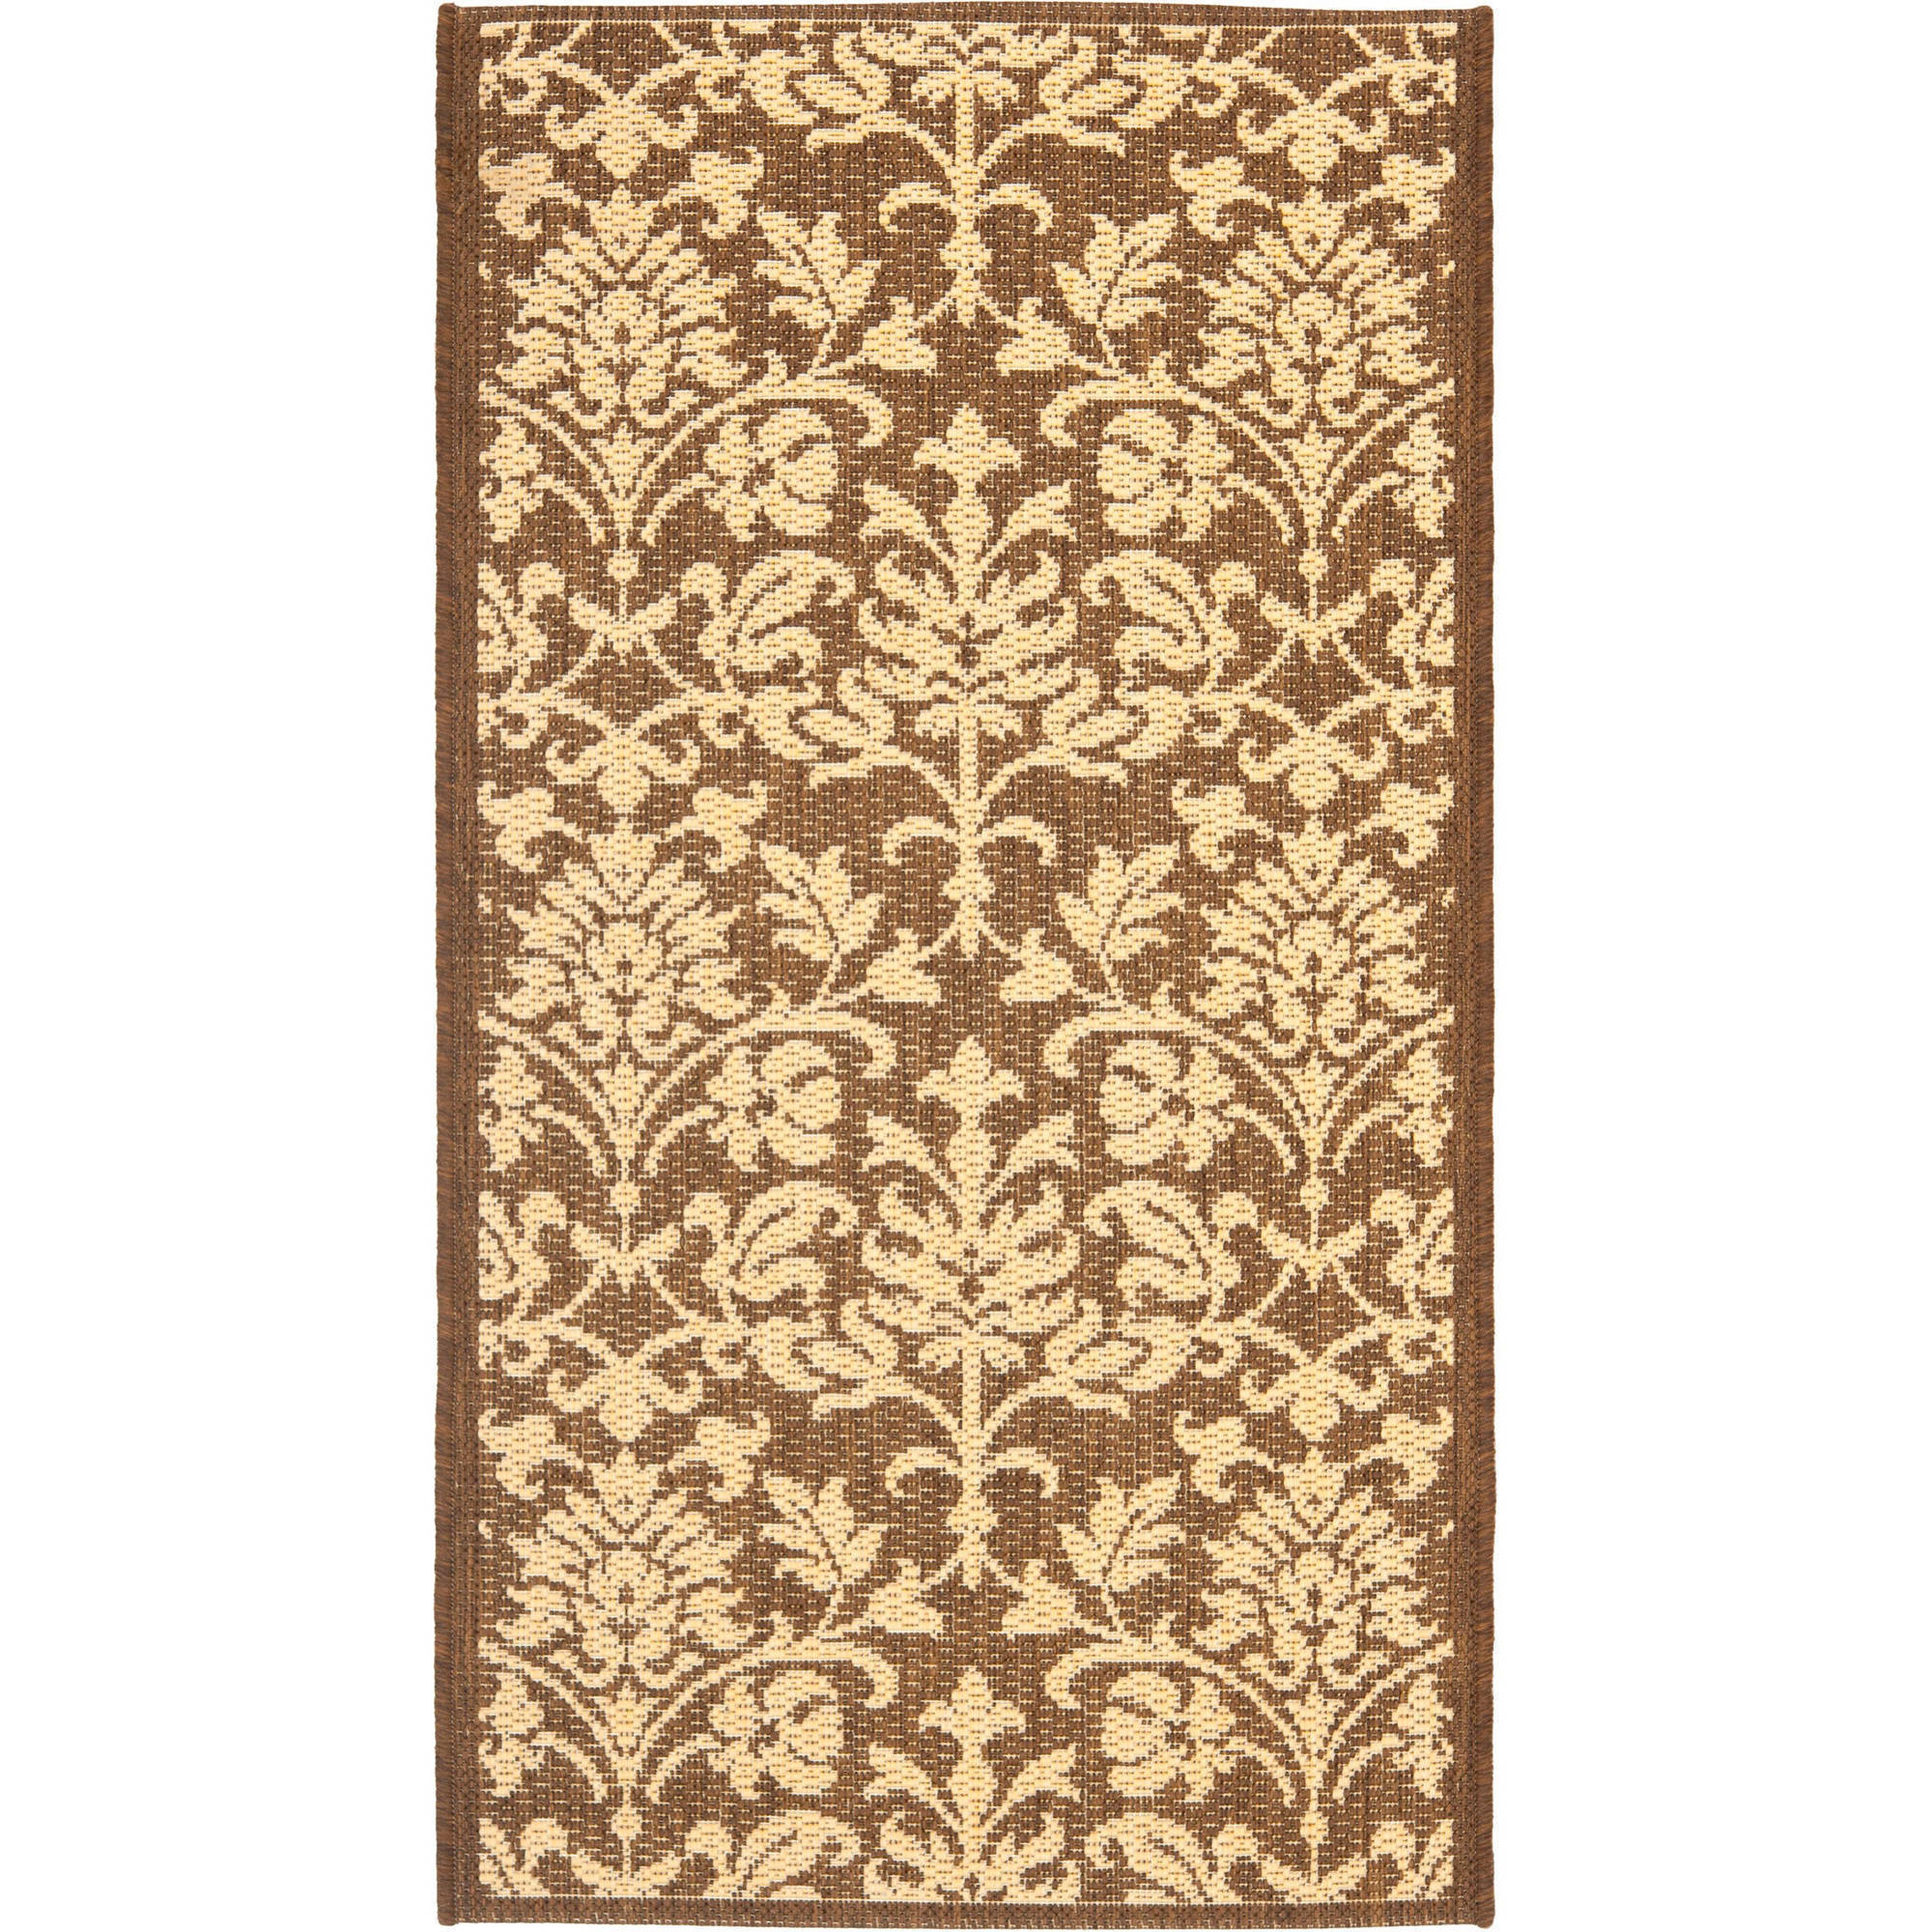 Safavieh Resorts Area Indoor/Outdoor Rug, Chocolate/Natural